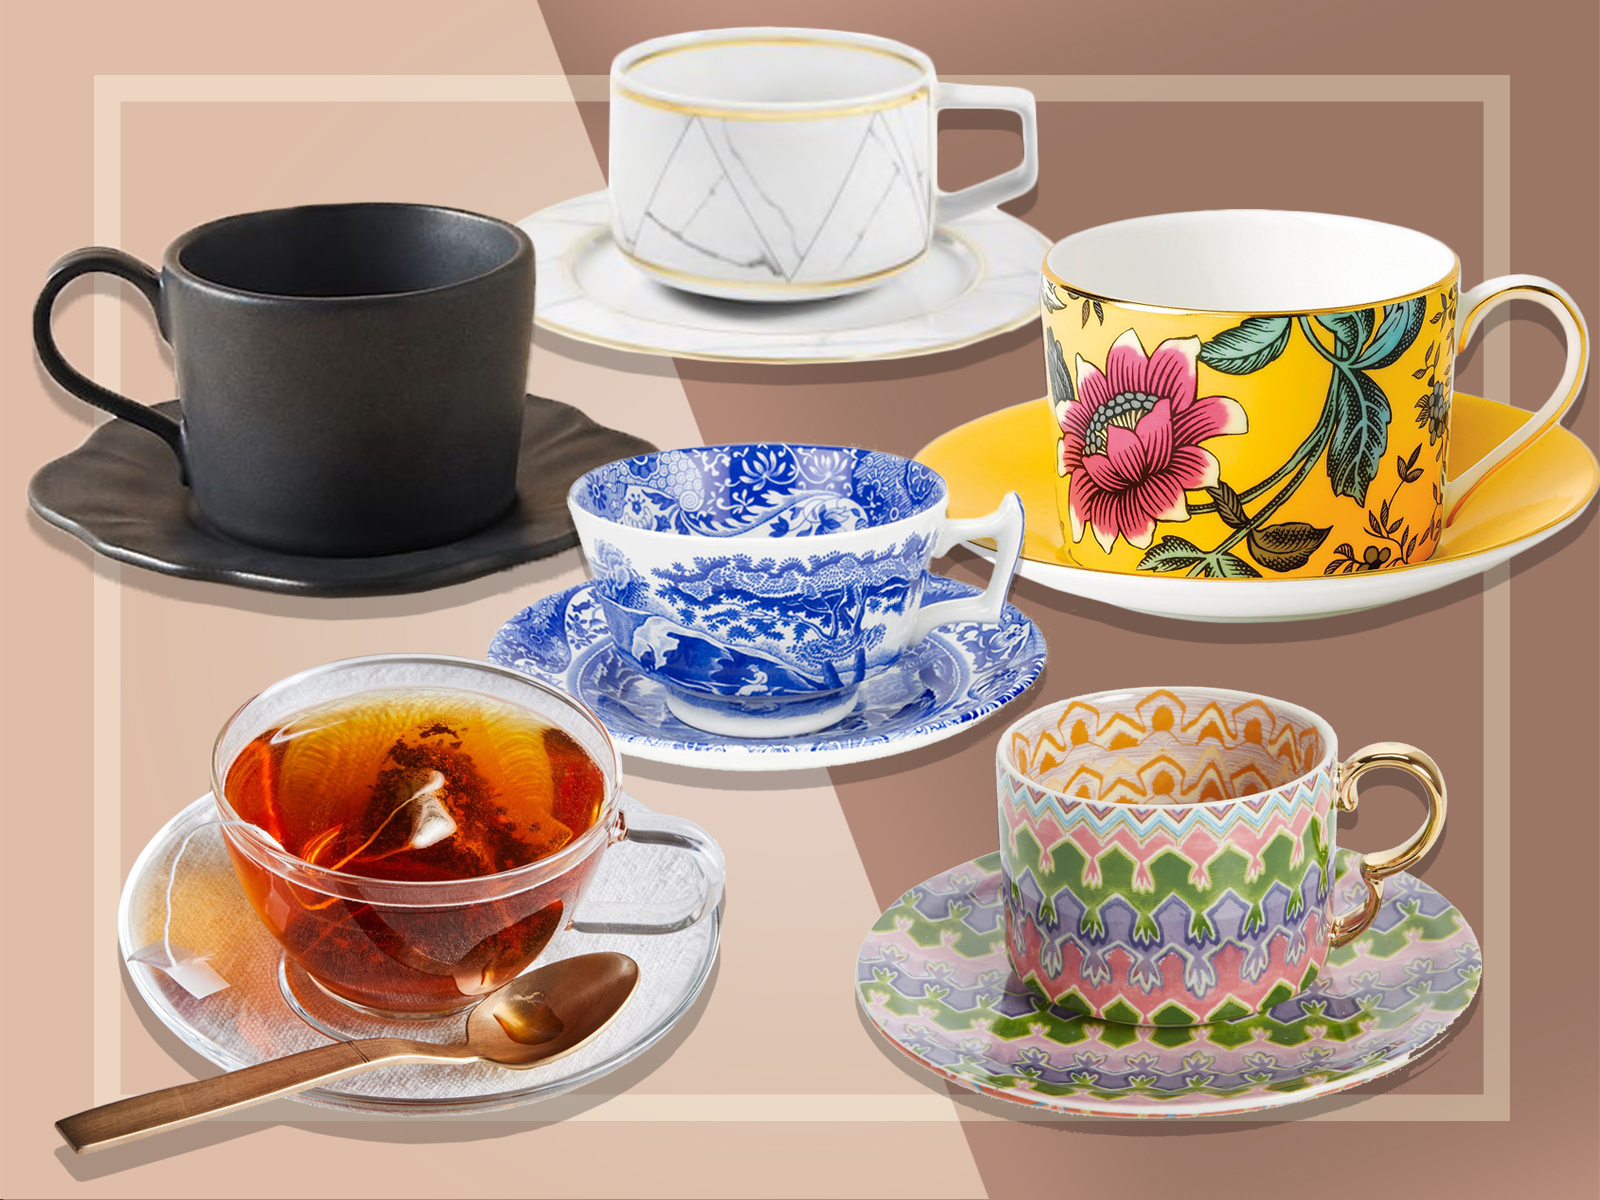 tea-cups-FT-BLOG0120.jpg